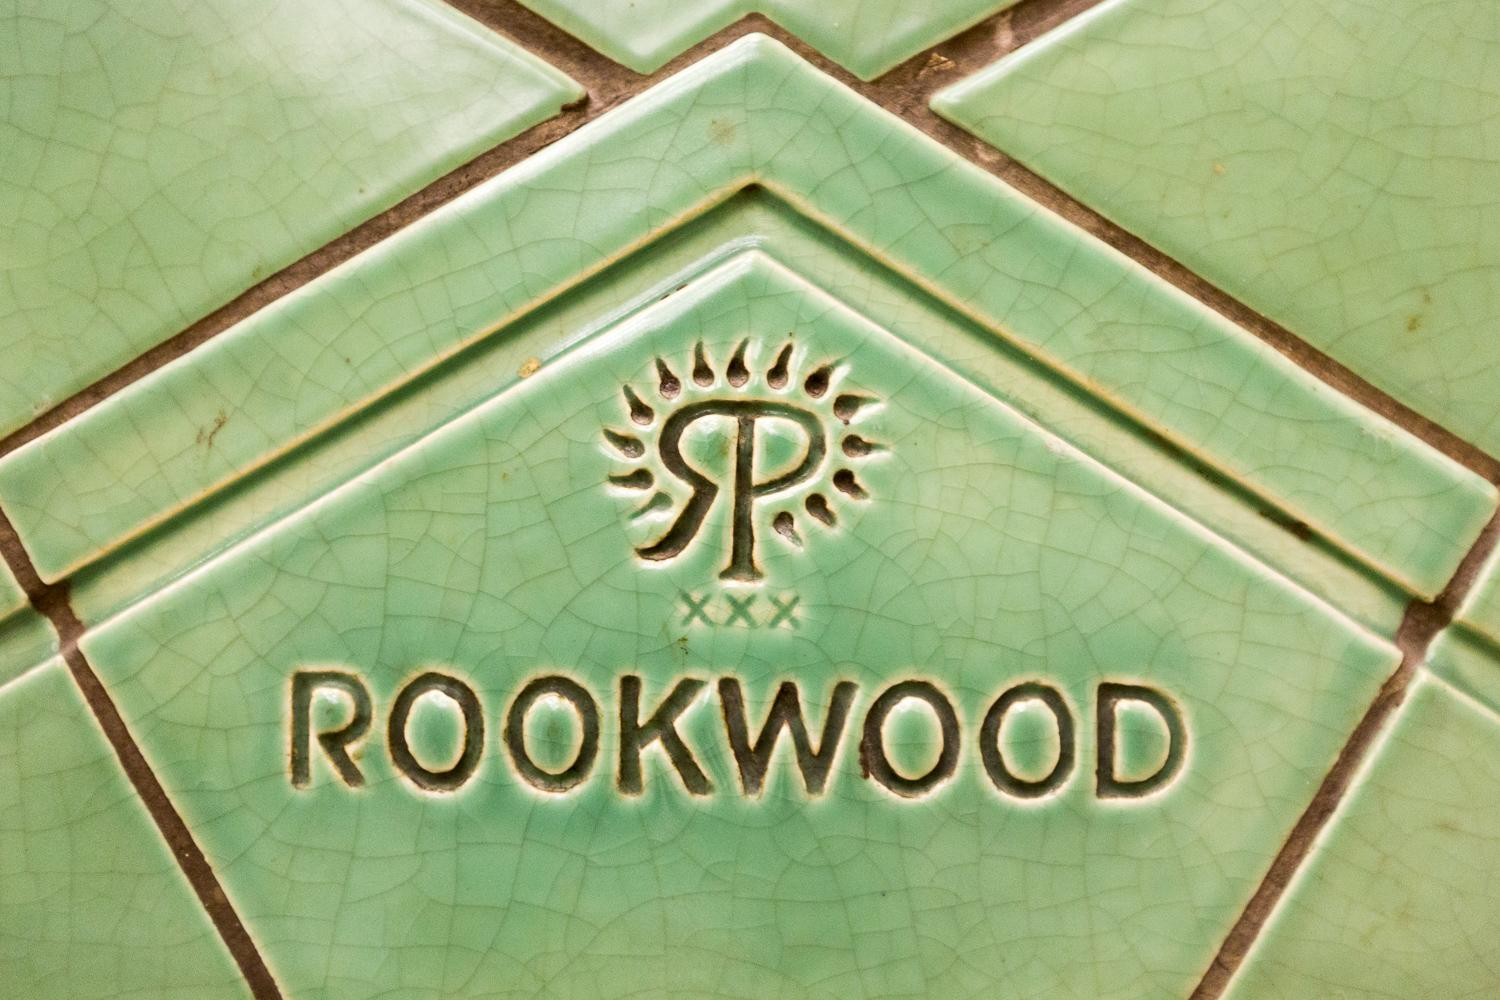 The Rookwood tile entryway, leading to the lower portion of the Hilton Netherland Plaza from Carew Tower / Image: Daniel Smyth Photography